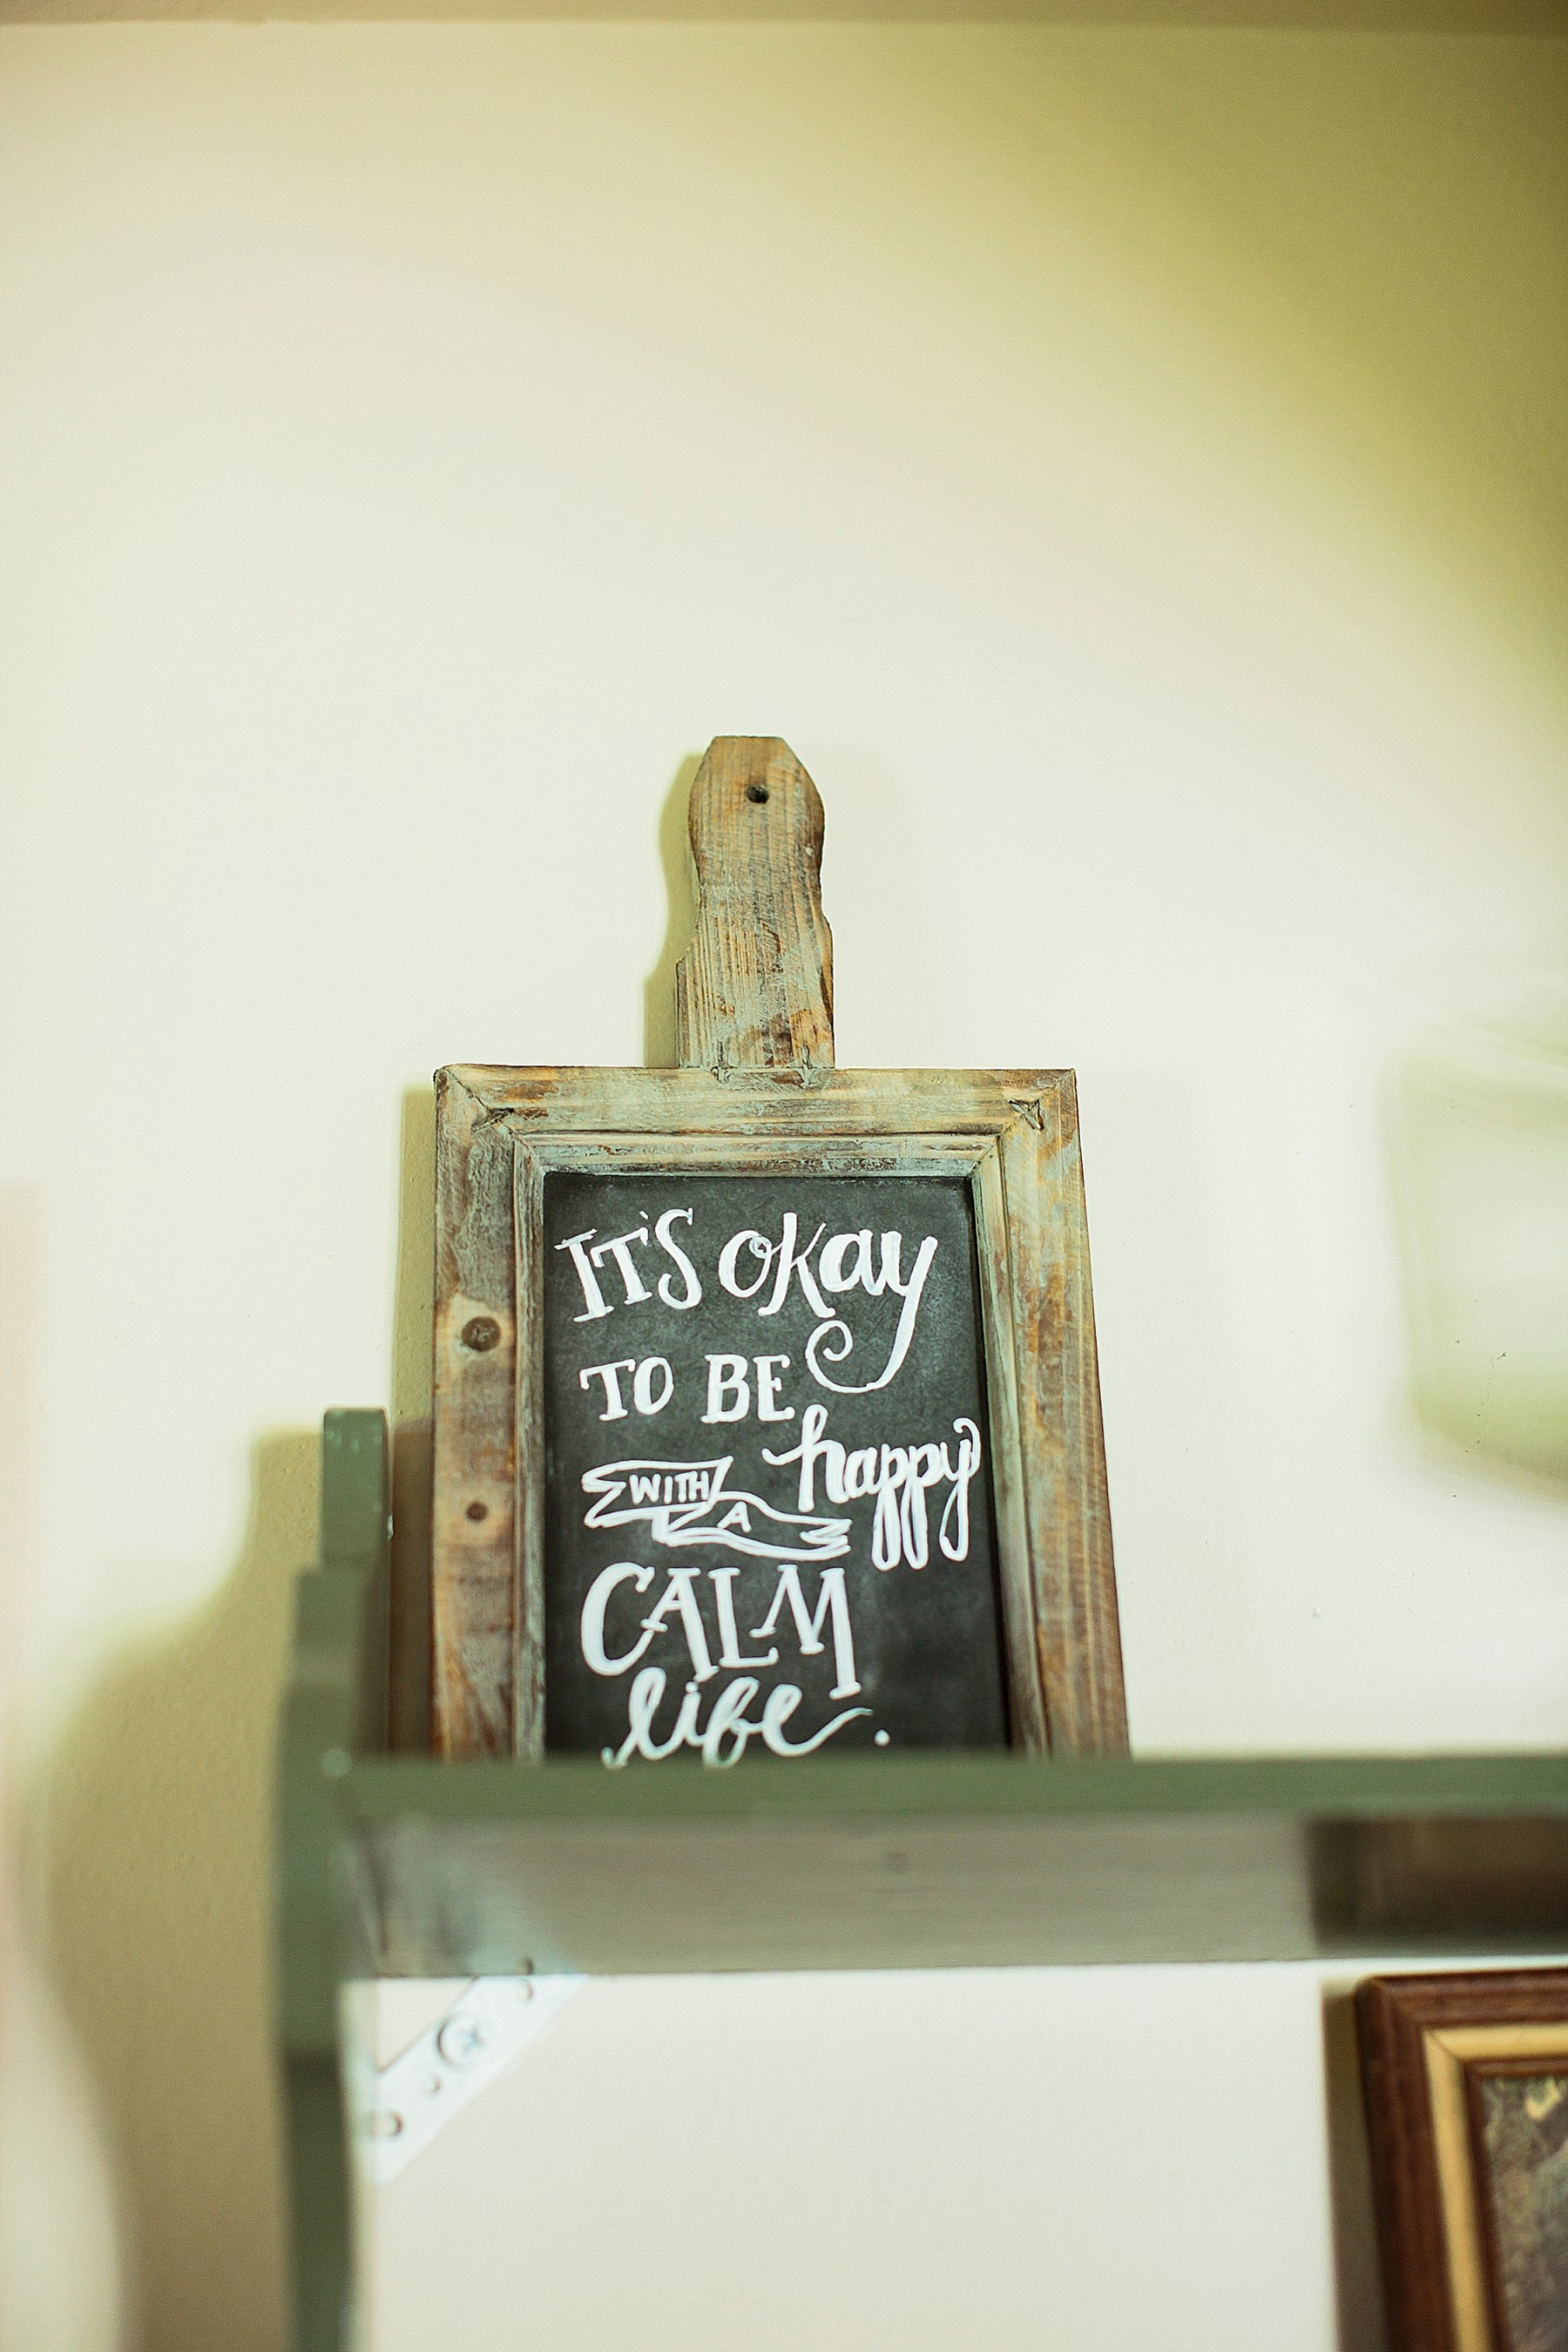 It's OK to be happy with a calm life